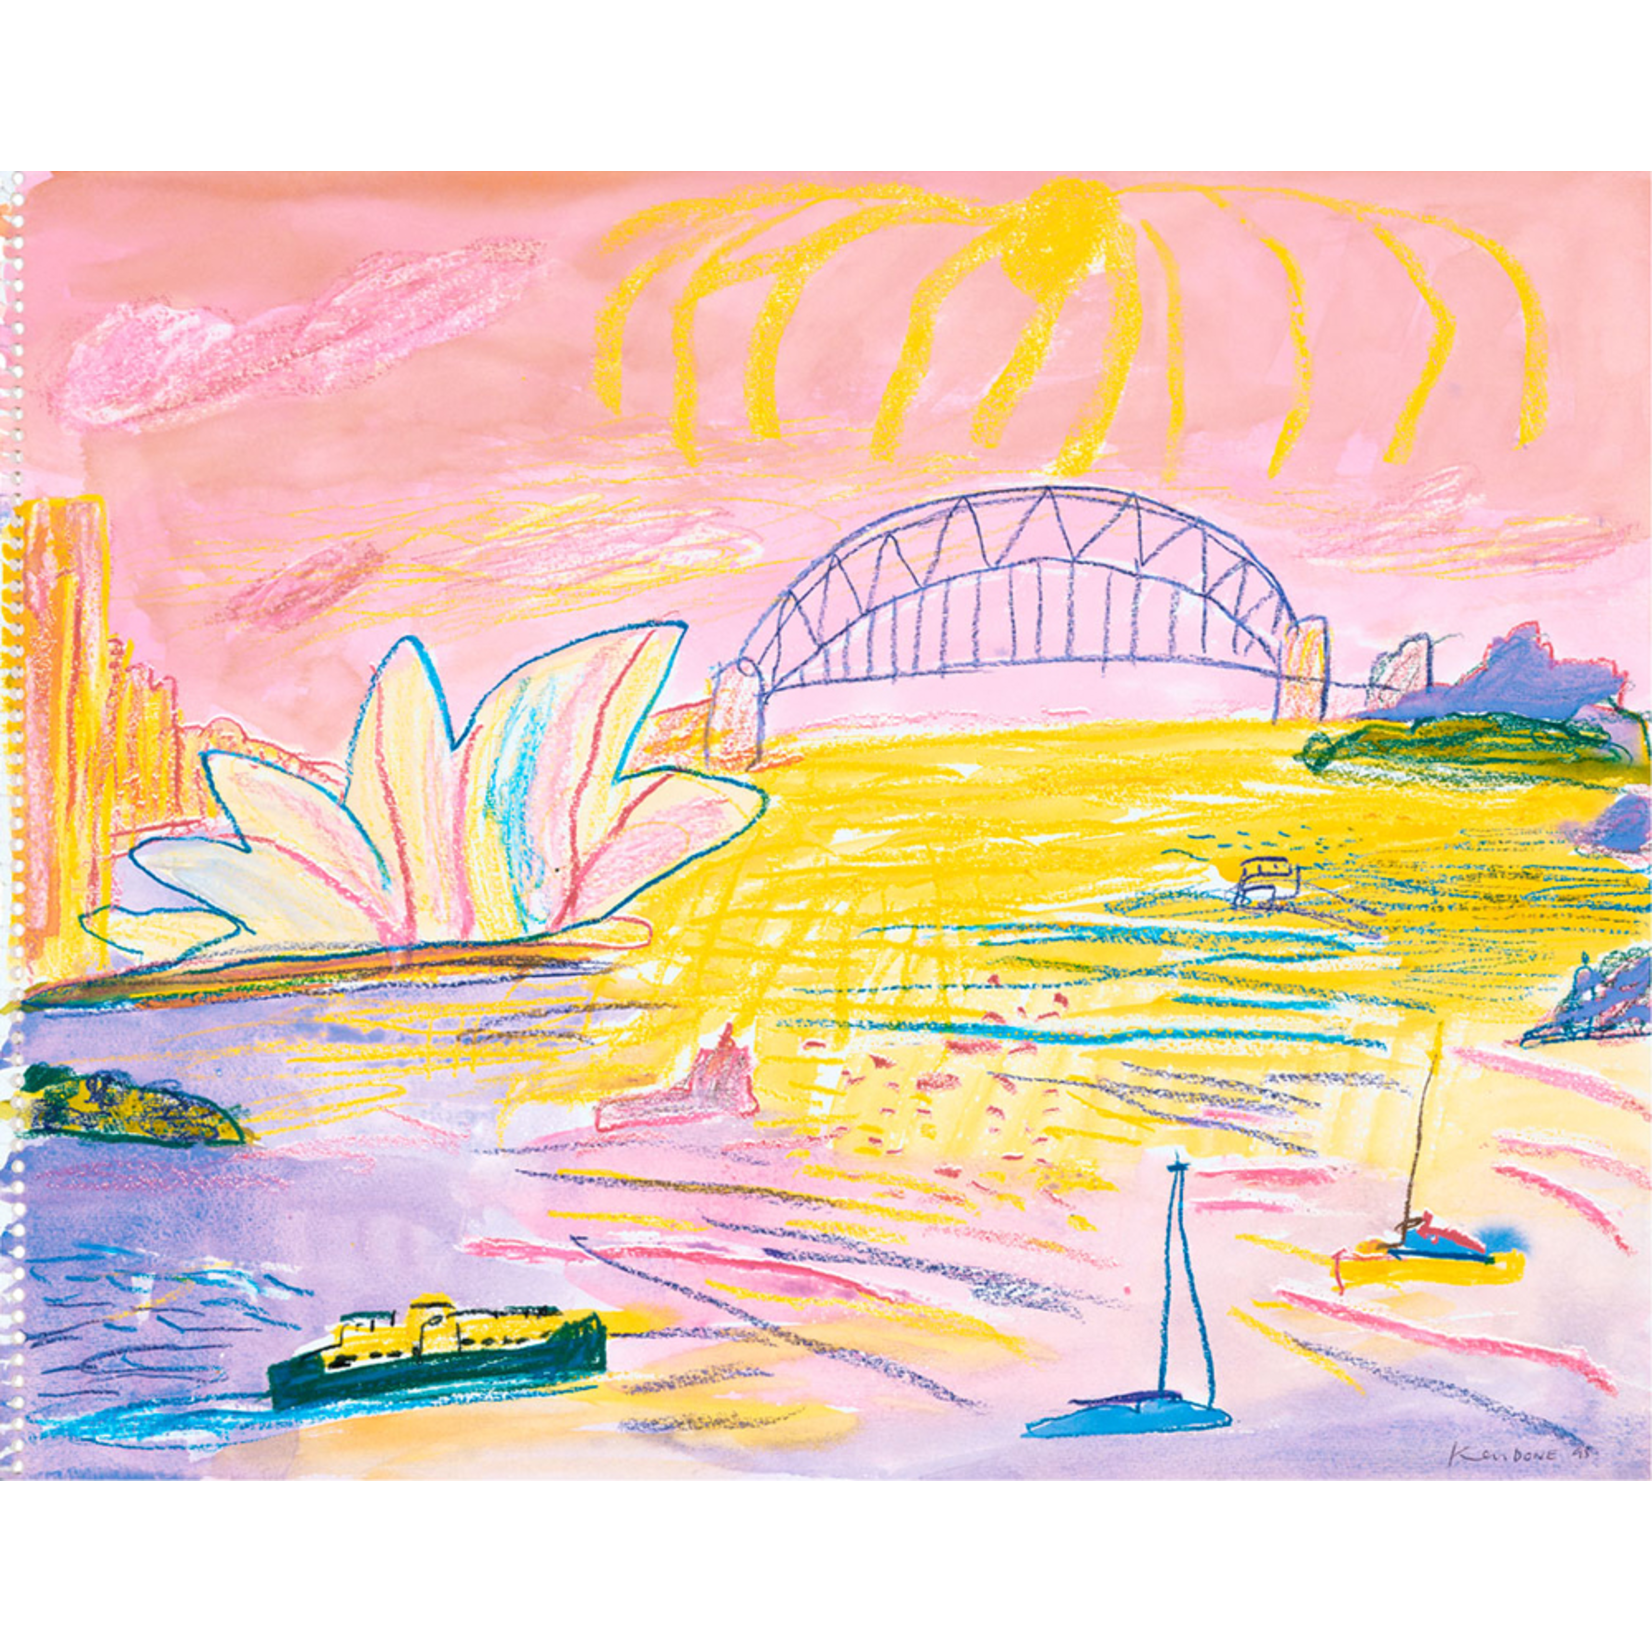 Limited Edition Prints Sydney, late afternoon from Bradley's Head, 1995